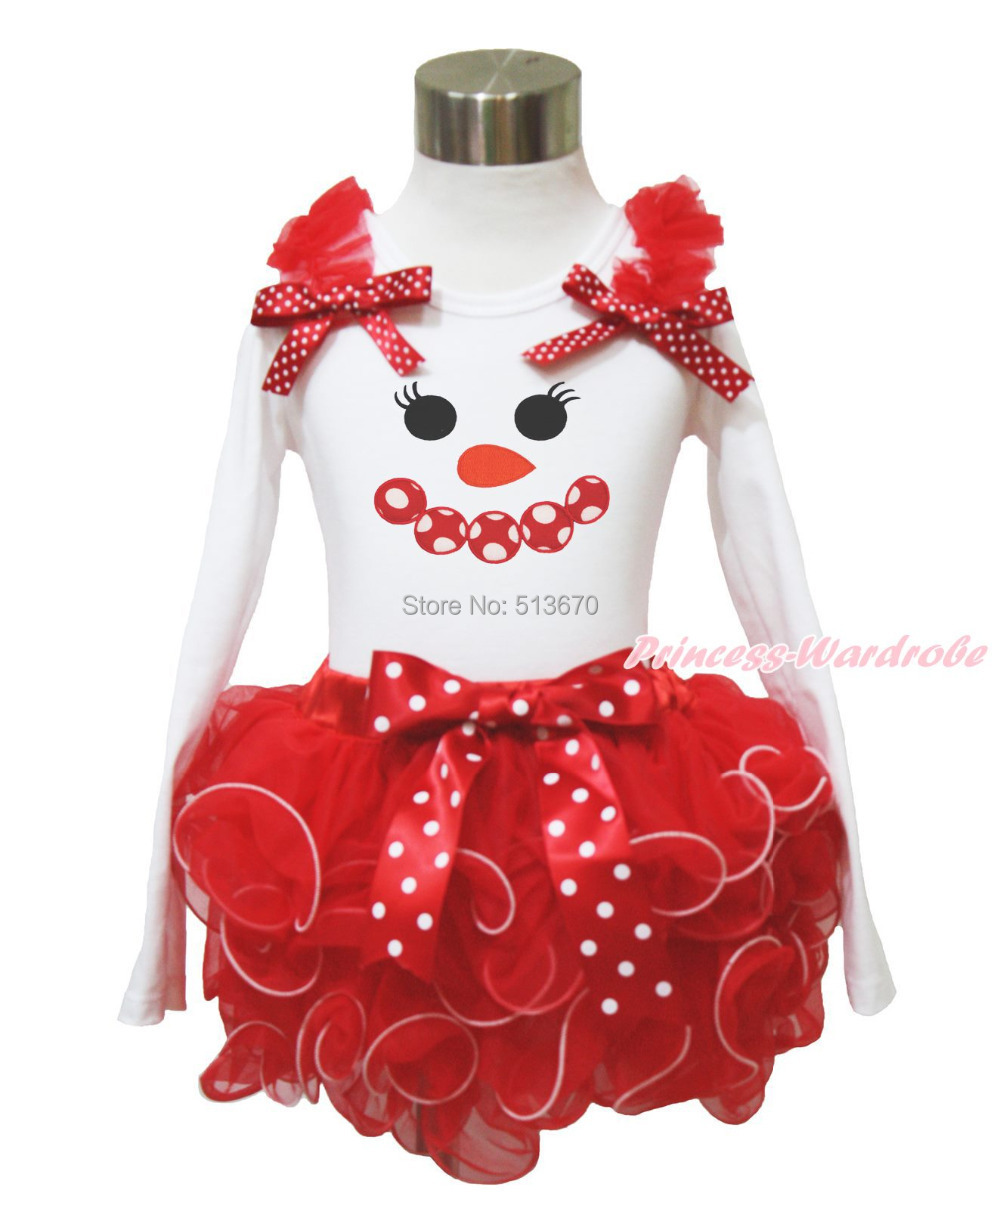 XMAS Minnie Snowman Print Red Ruffle Red White Dot Bow White Top Baby Girl Red Petal Pettiskirt Outfit Set NB-8Y MAPSA0087 my 1st christmas santa claus white top minnie dot petal skirt girls outfit nb 8y